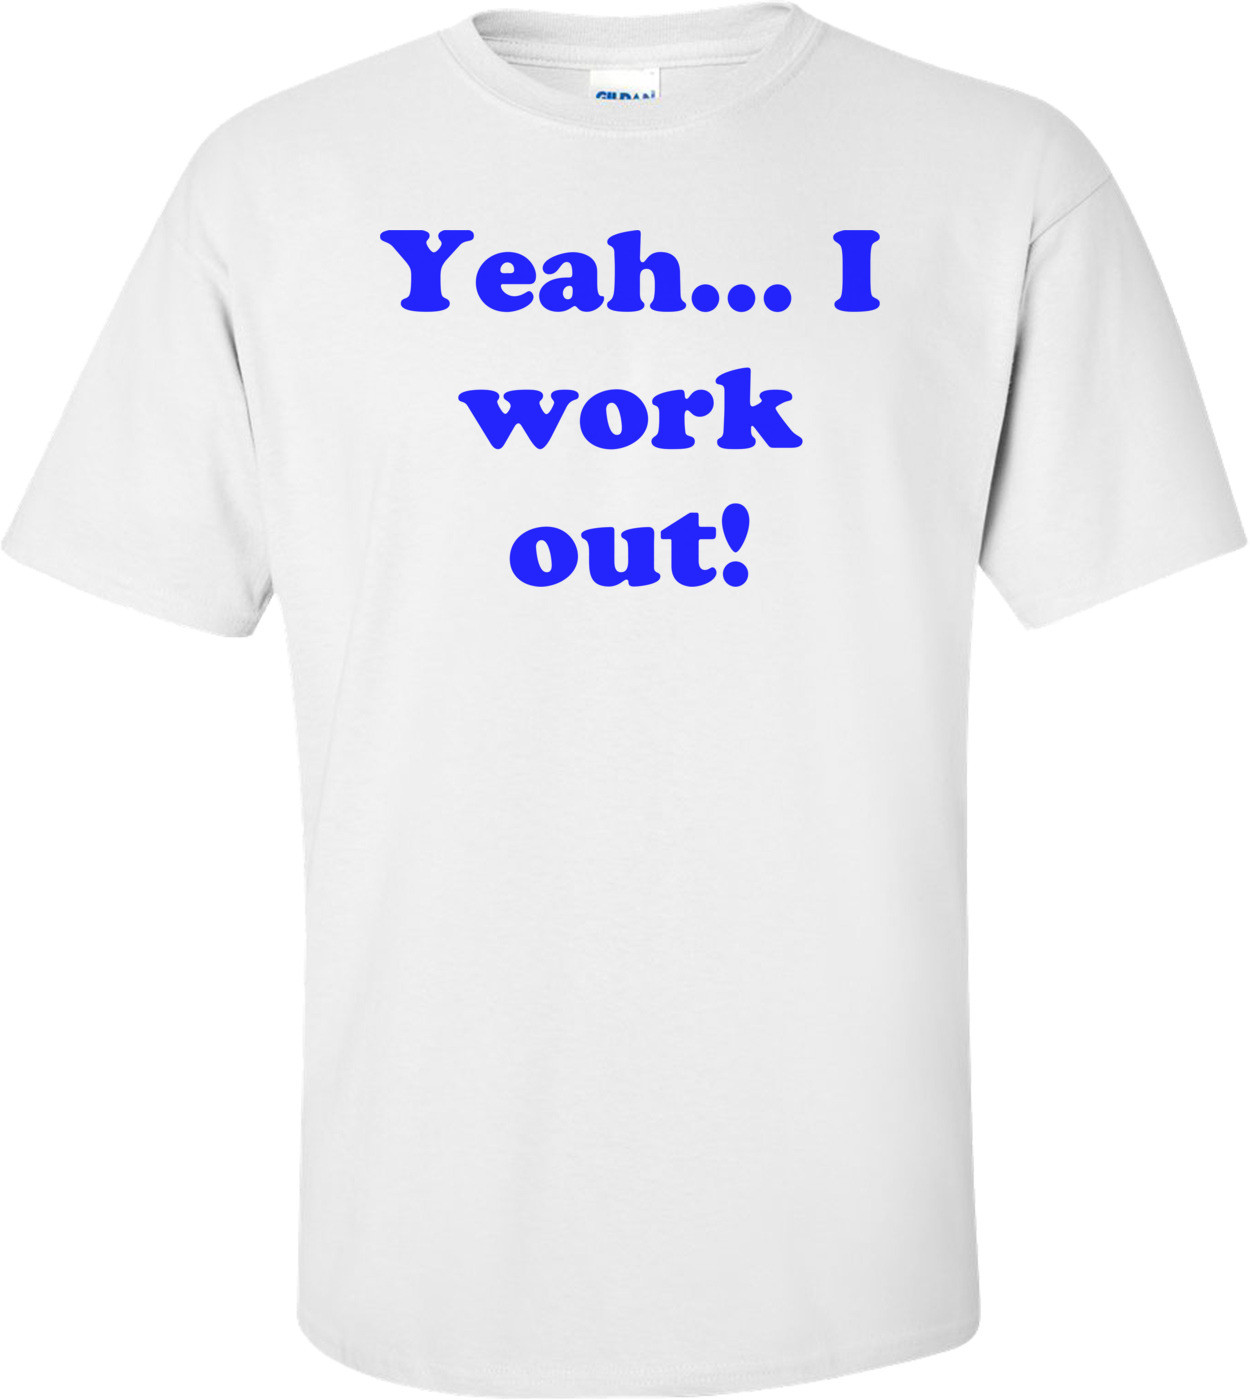 Yeah... I work out! Shirt